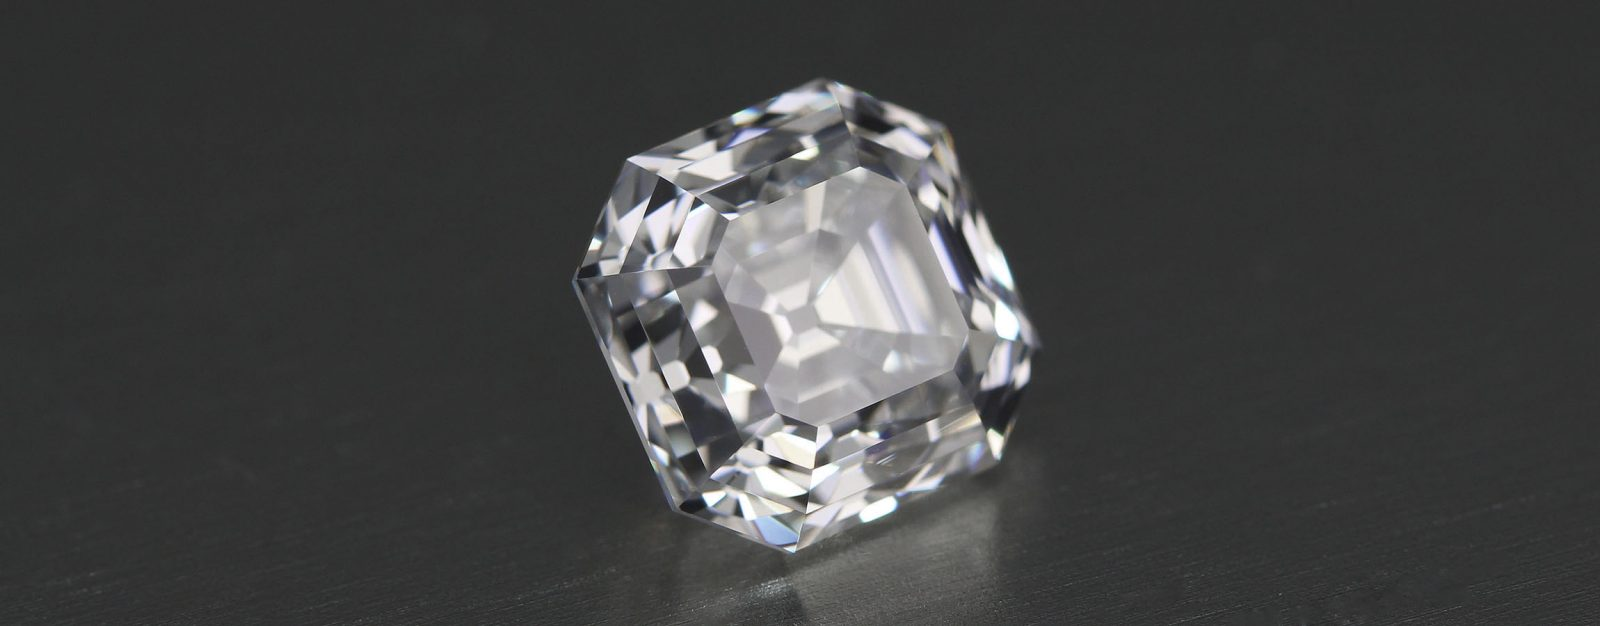 2.52 carat Asscher Cut Diamond of first water